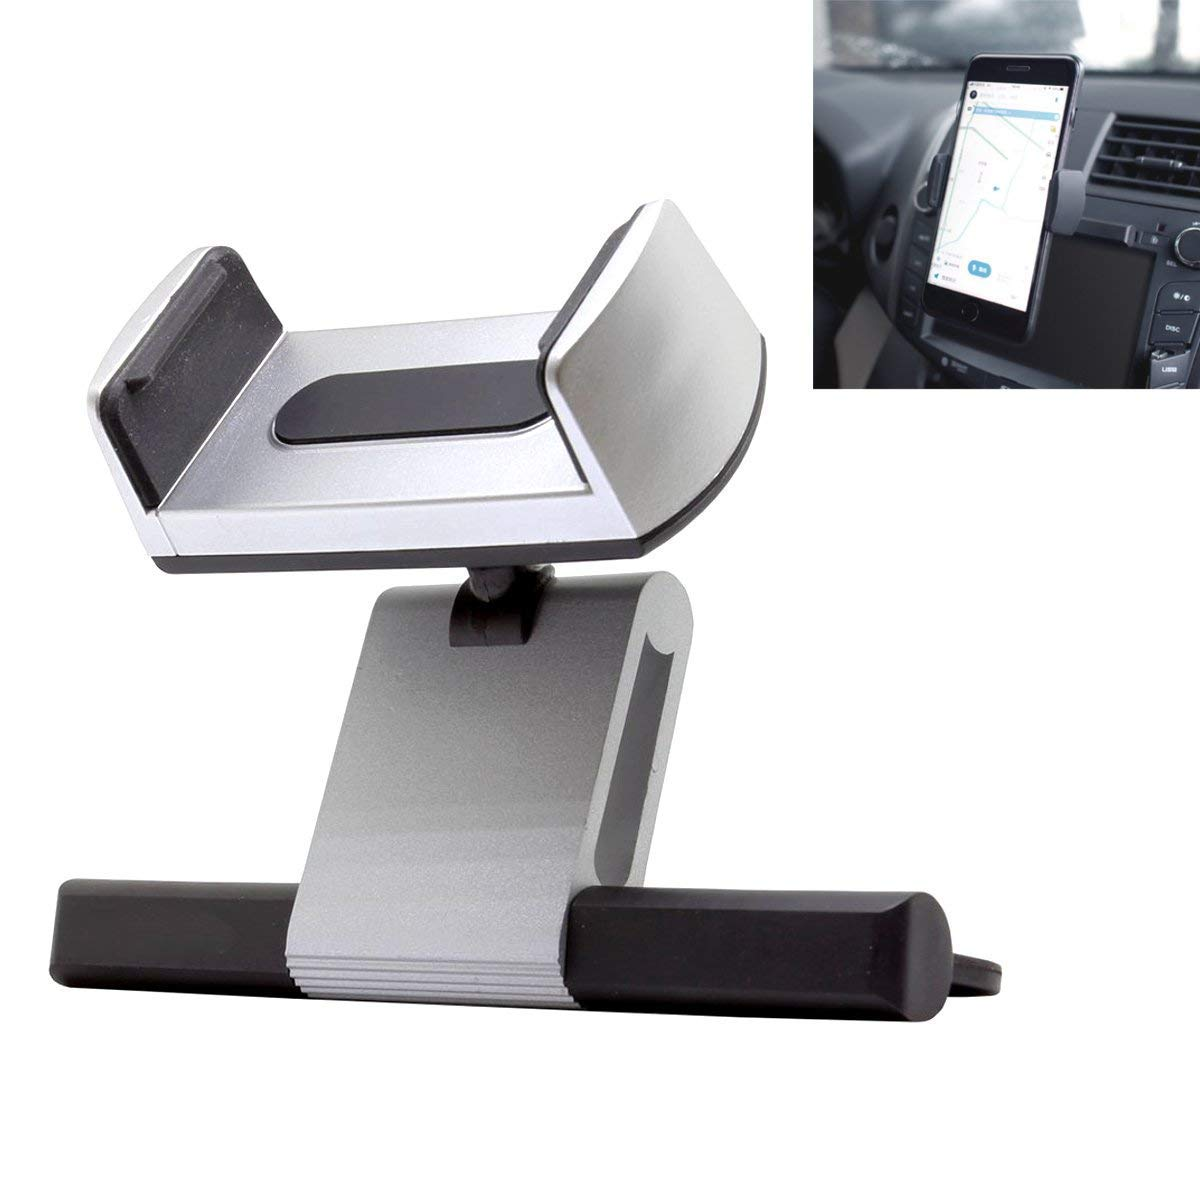 Car Mount, Phone Holder Universal Car Phone Holder,CD Slot Car Phone Mount Compatible w/Universal iPhone X,SE, 5, 5S, 6, 6S, 7, 7 Plus,8, 8 Plus/Galaxy S5, S6, S7, S7 Edge, S8,S9,Note 4, Note Edge